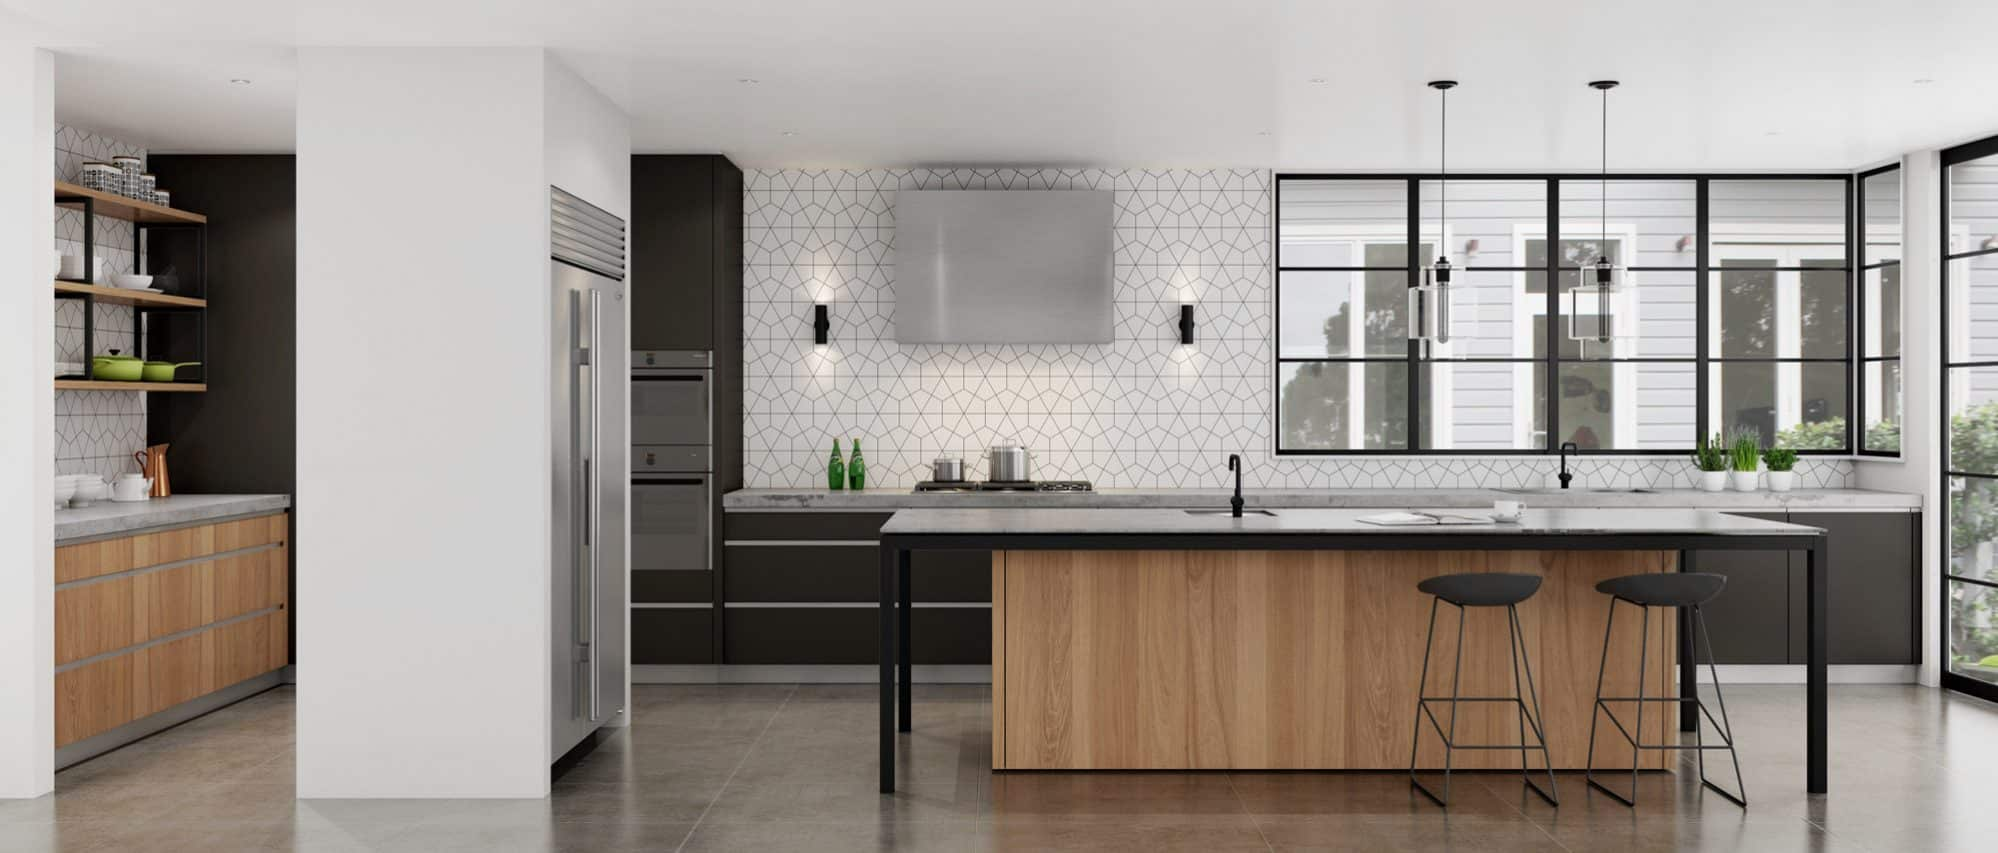 Modern Kitchen Design with black cabinets and timber veneer